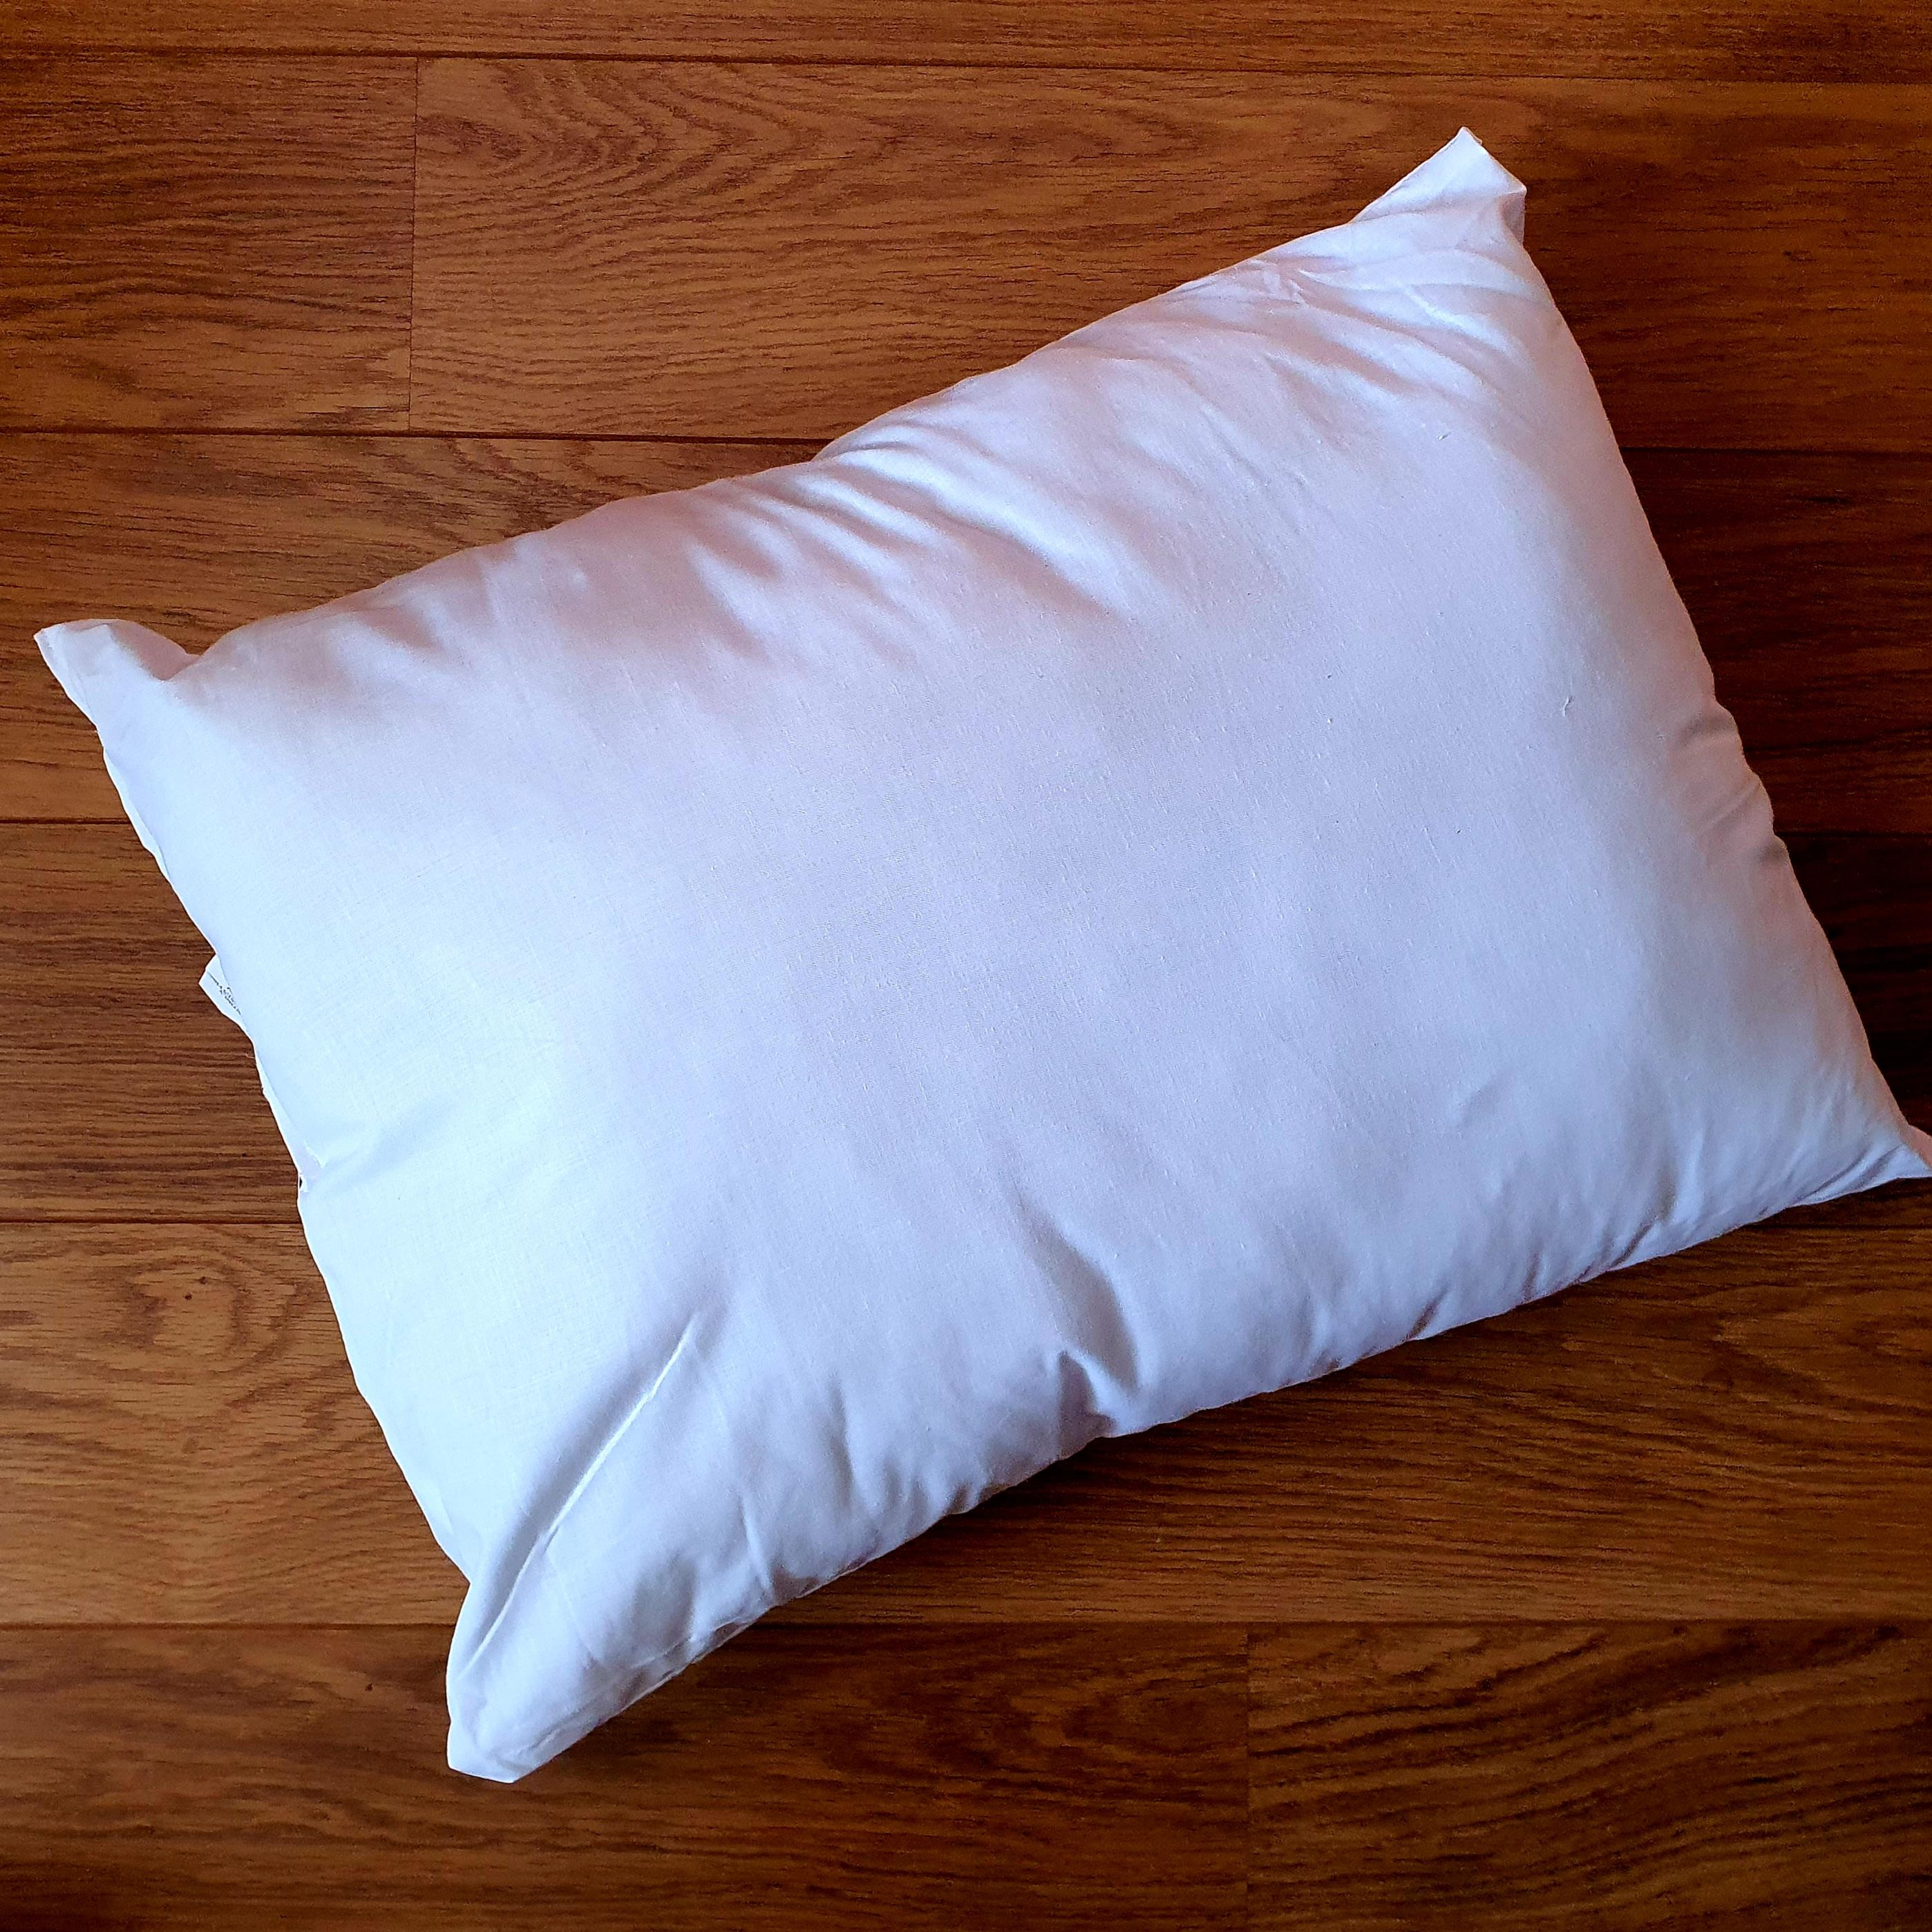 60cm x 45cm cushion inner pad generously filled with Eco-Hollowfibre made from recycled plastic bottles in white poly cotton outer cover.